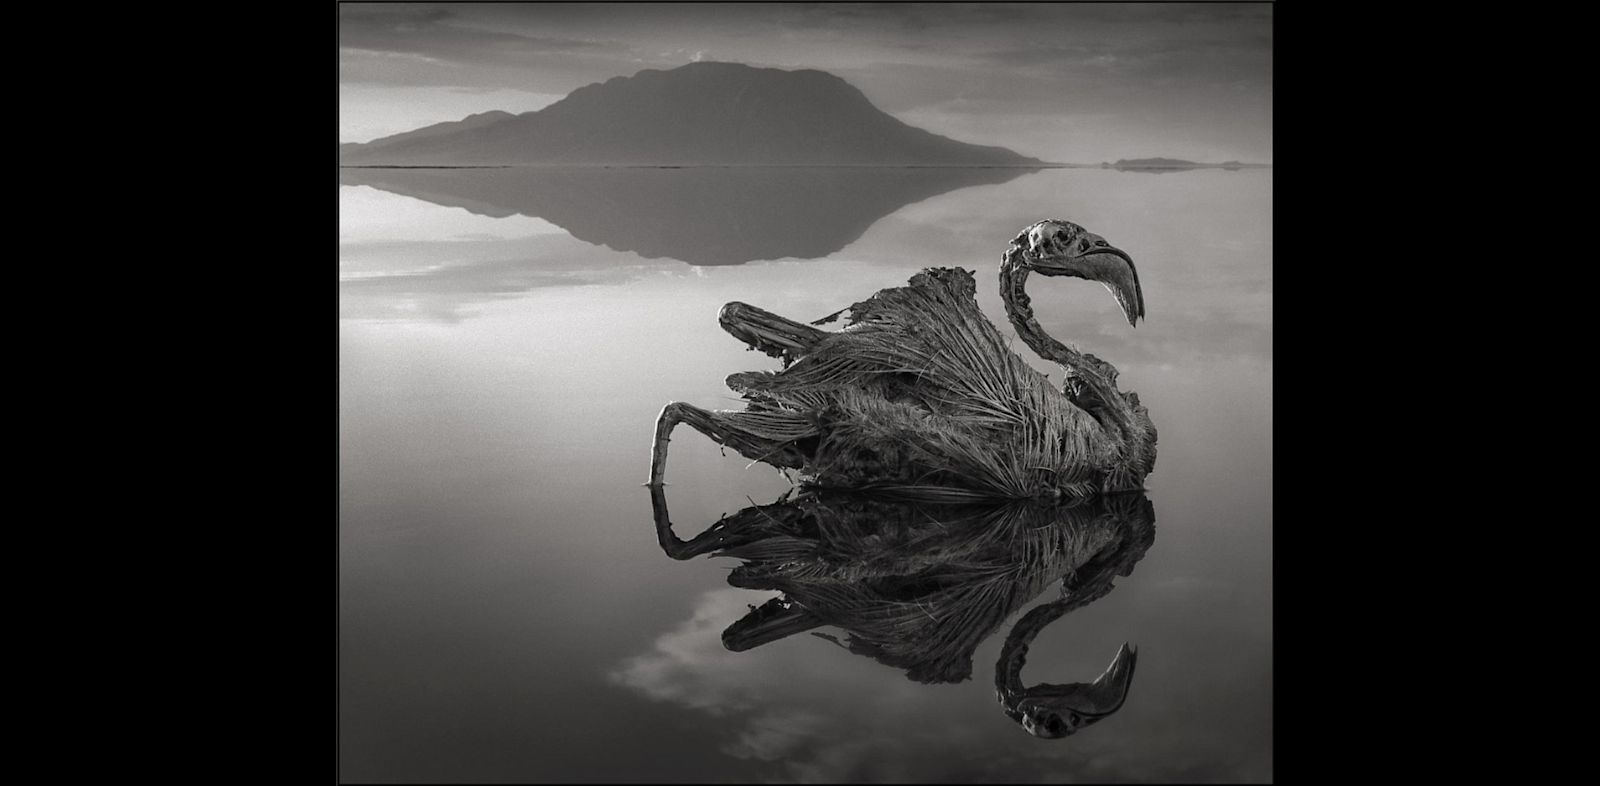 PHOTO: Calcified Reflected Flamingo, Lake Natron, 2010